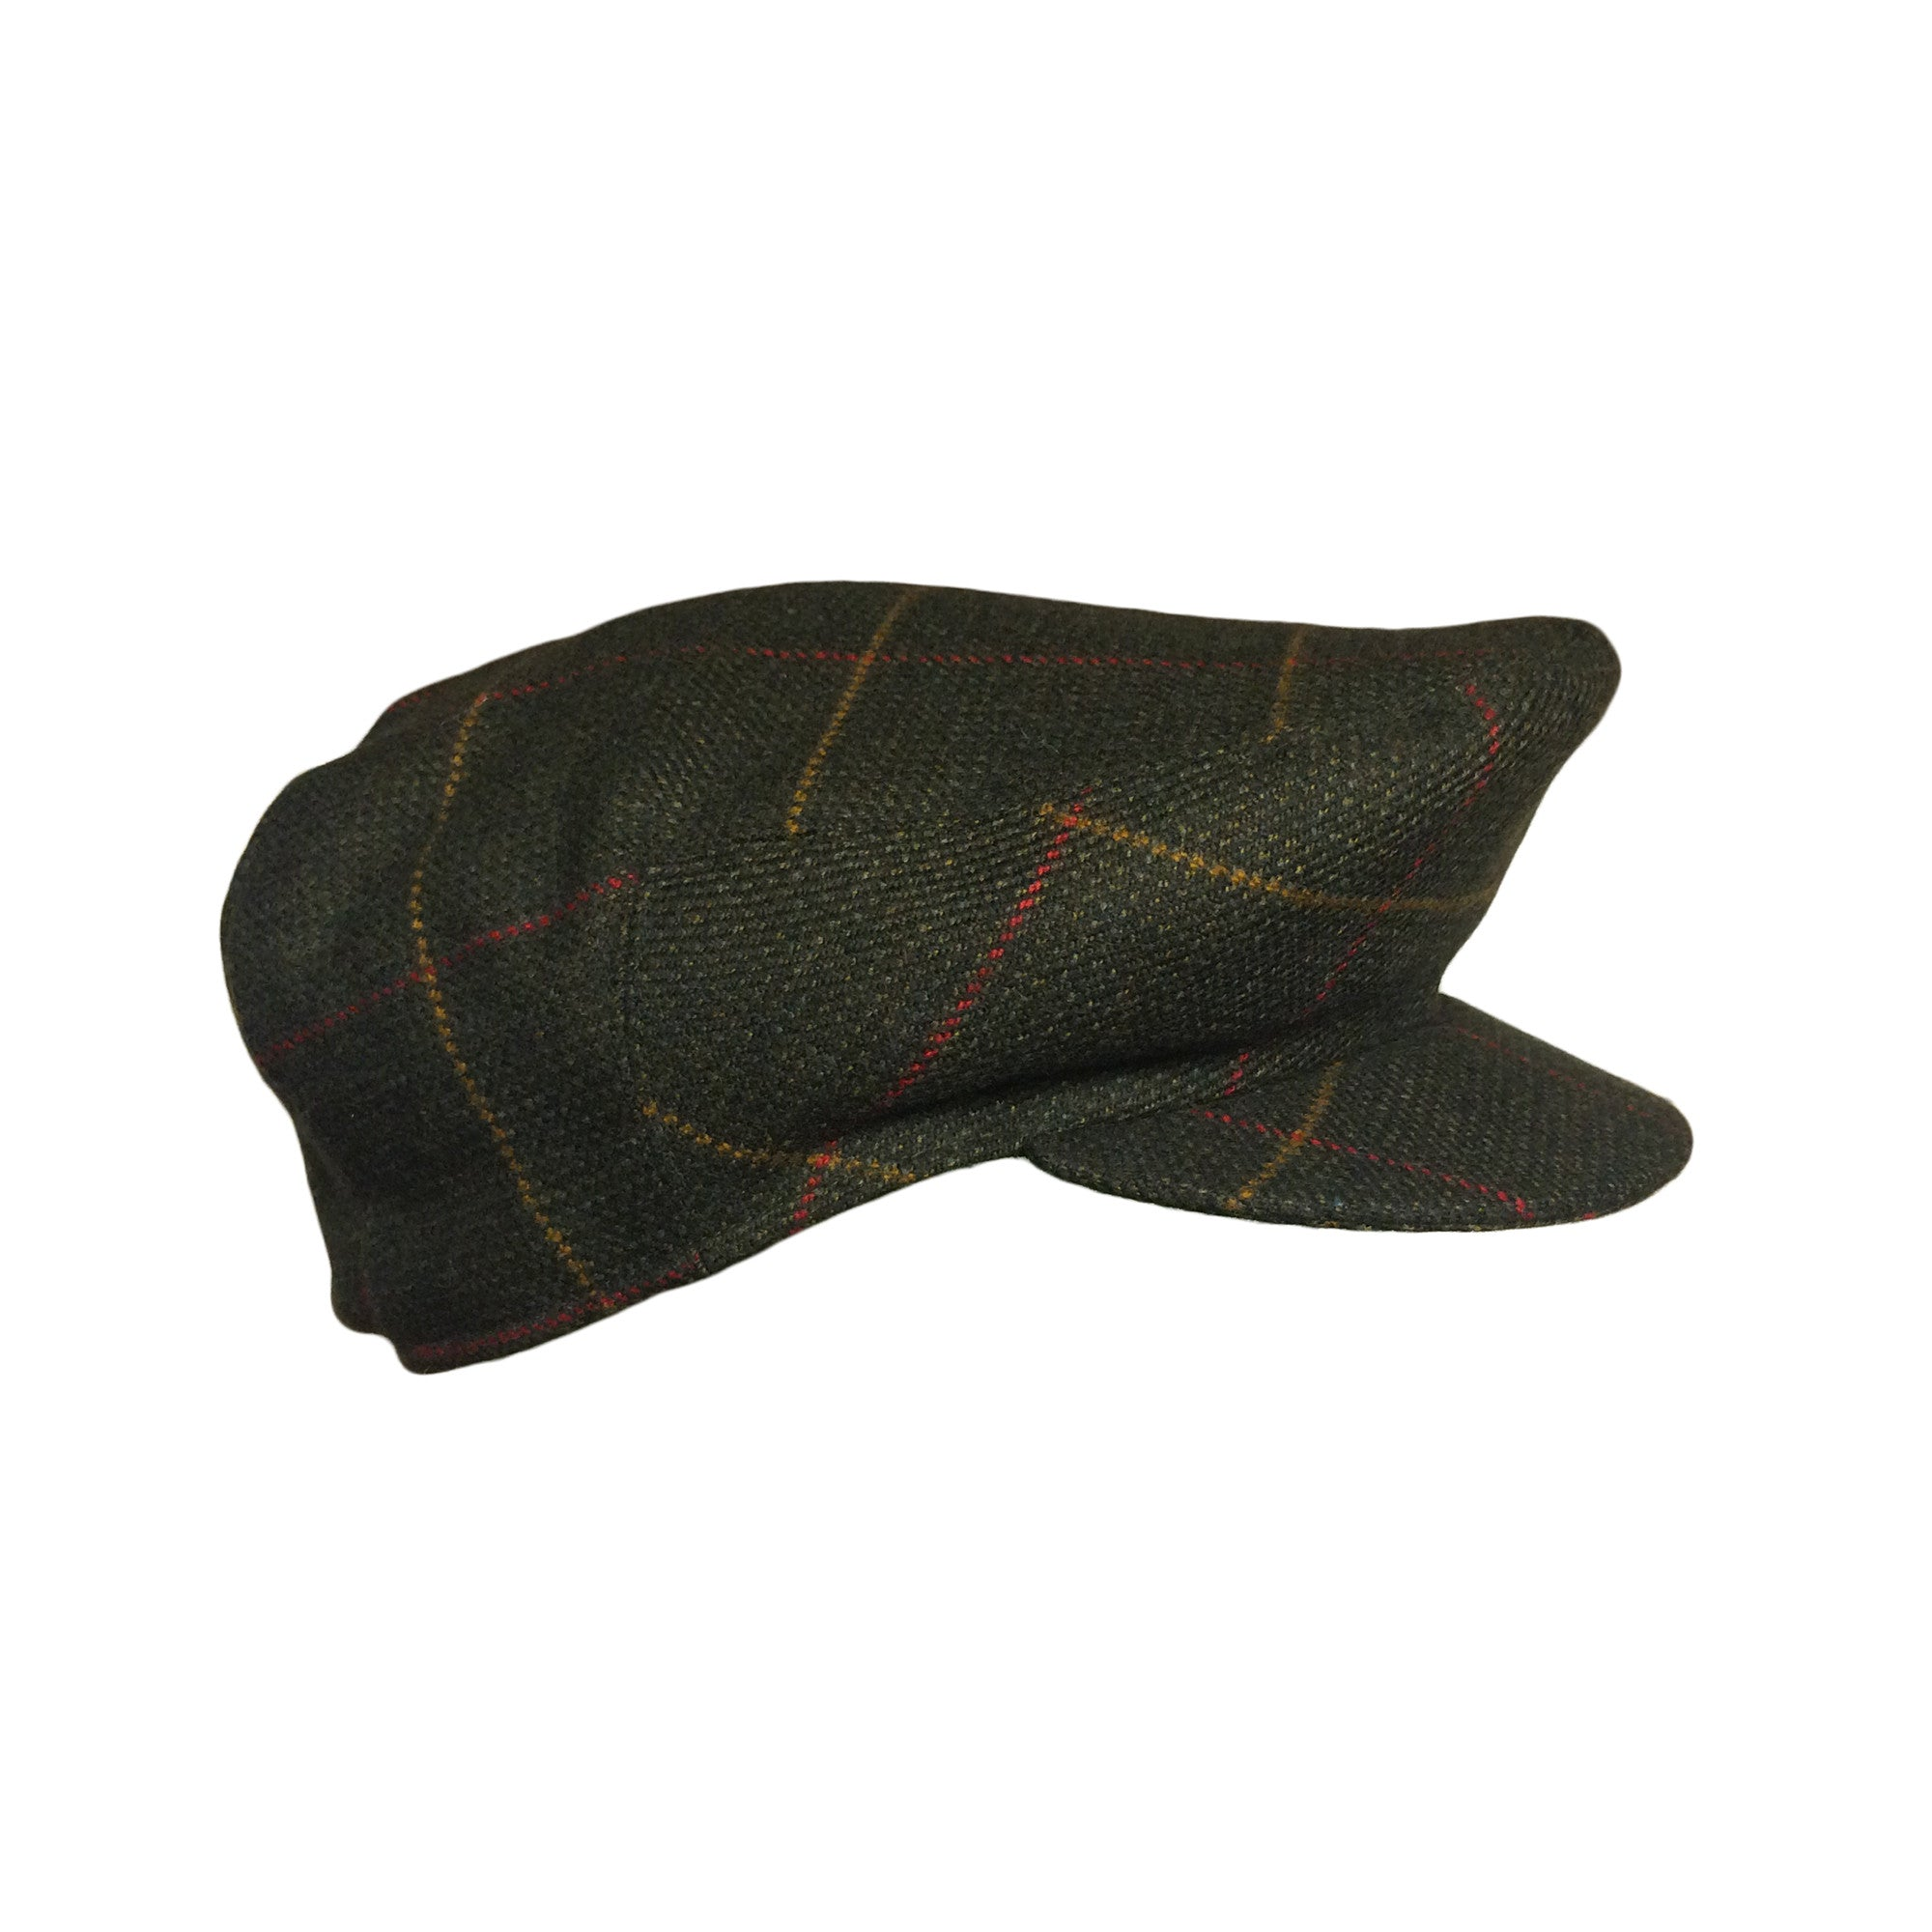 Laksen Hats Tarland Men s Sixpence Tweed Flat Cap  product tags  - Stuarts  Outdoor ddc482ba5c9